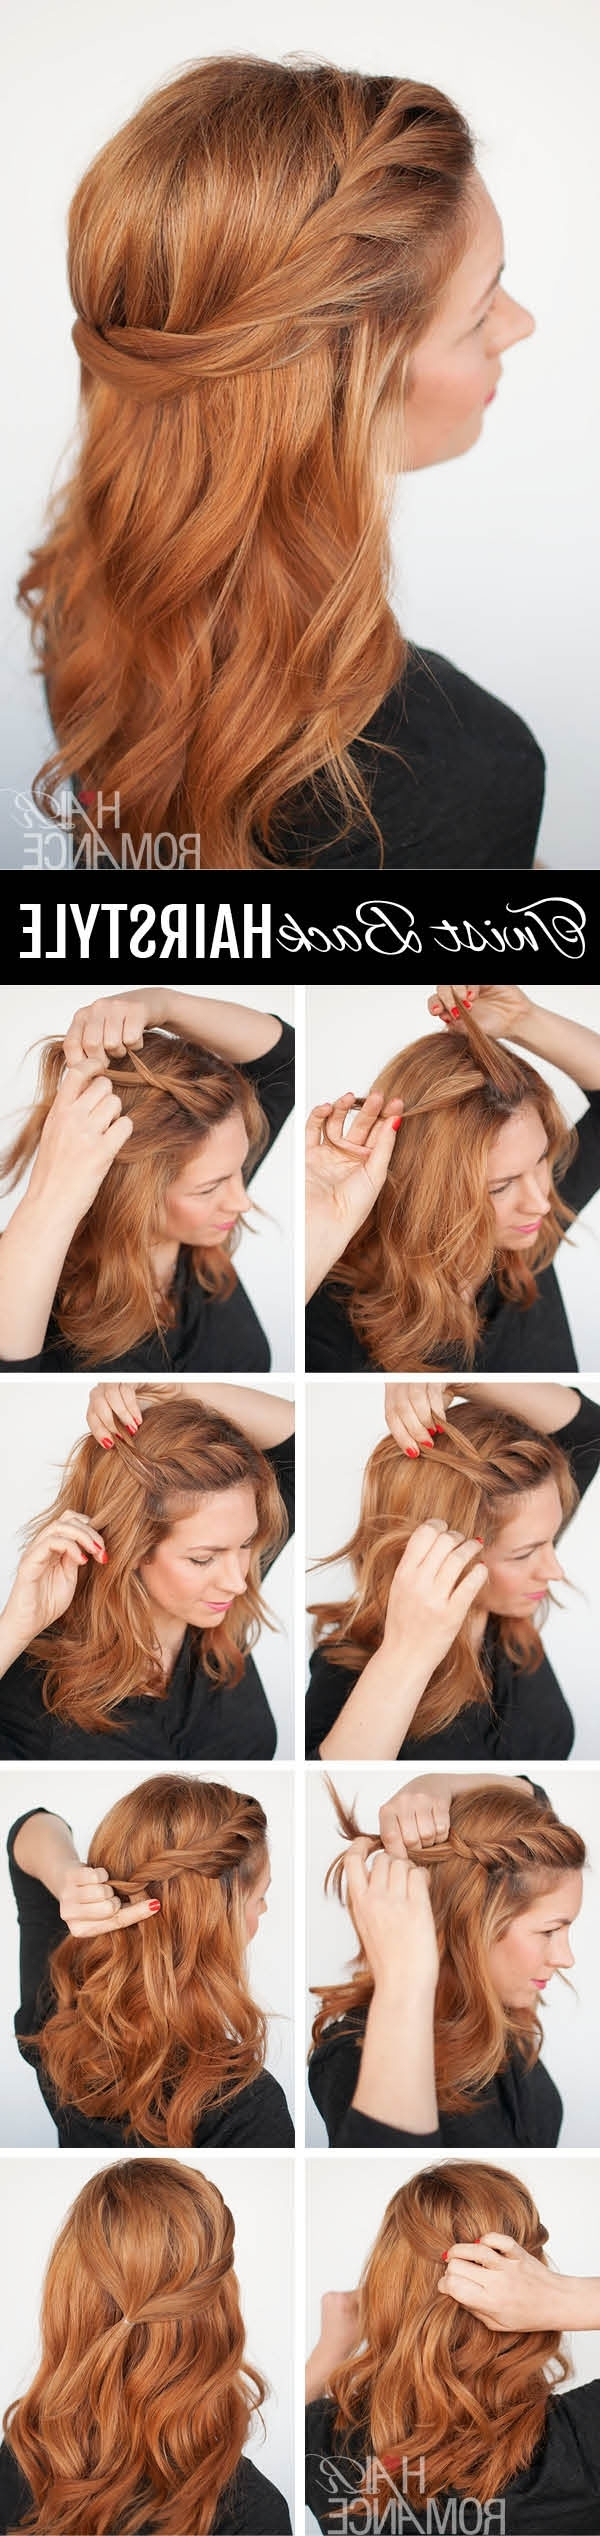 The Twist Back – Easy Half Up Hairstyle Tutorial – Hair Romance Within Favorite Romantic Twisted Hairdo Hairstyles (View 12 of 20)